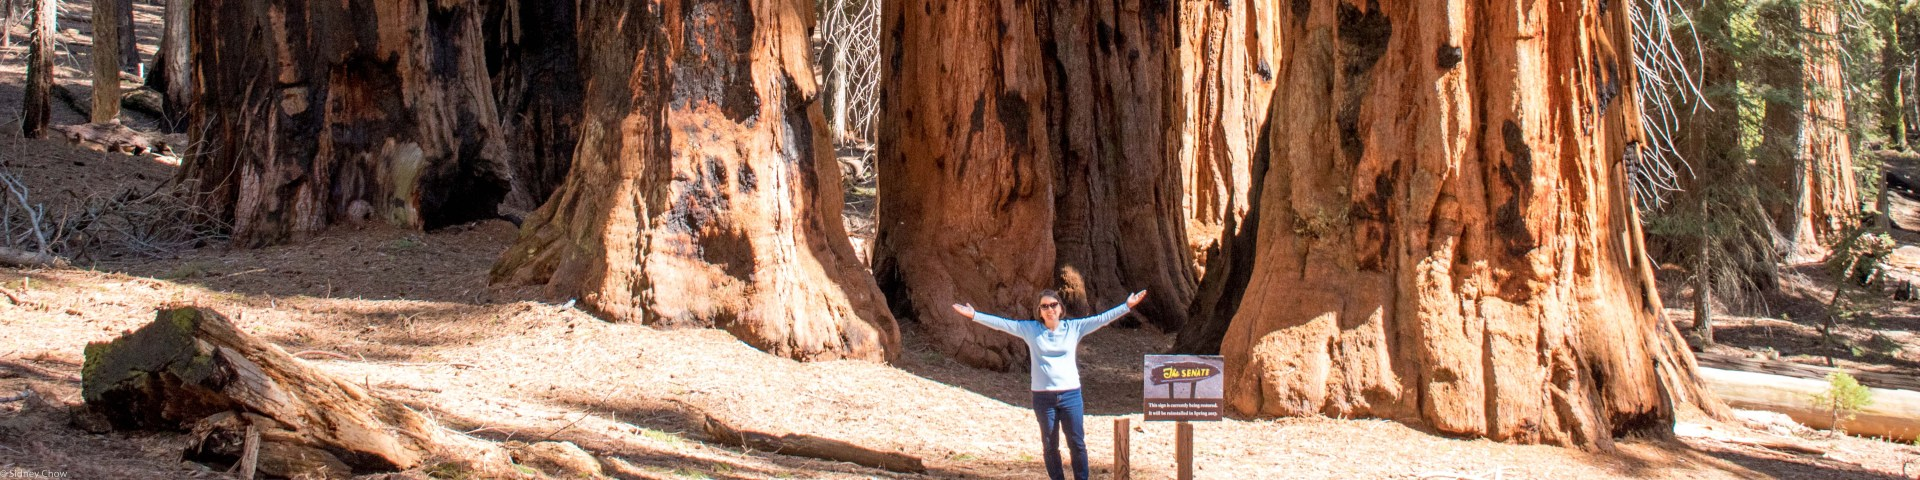 Sequoia National Park Featured Photo